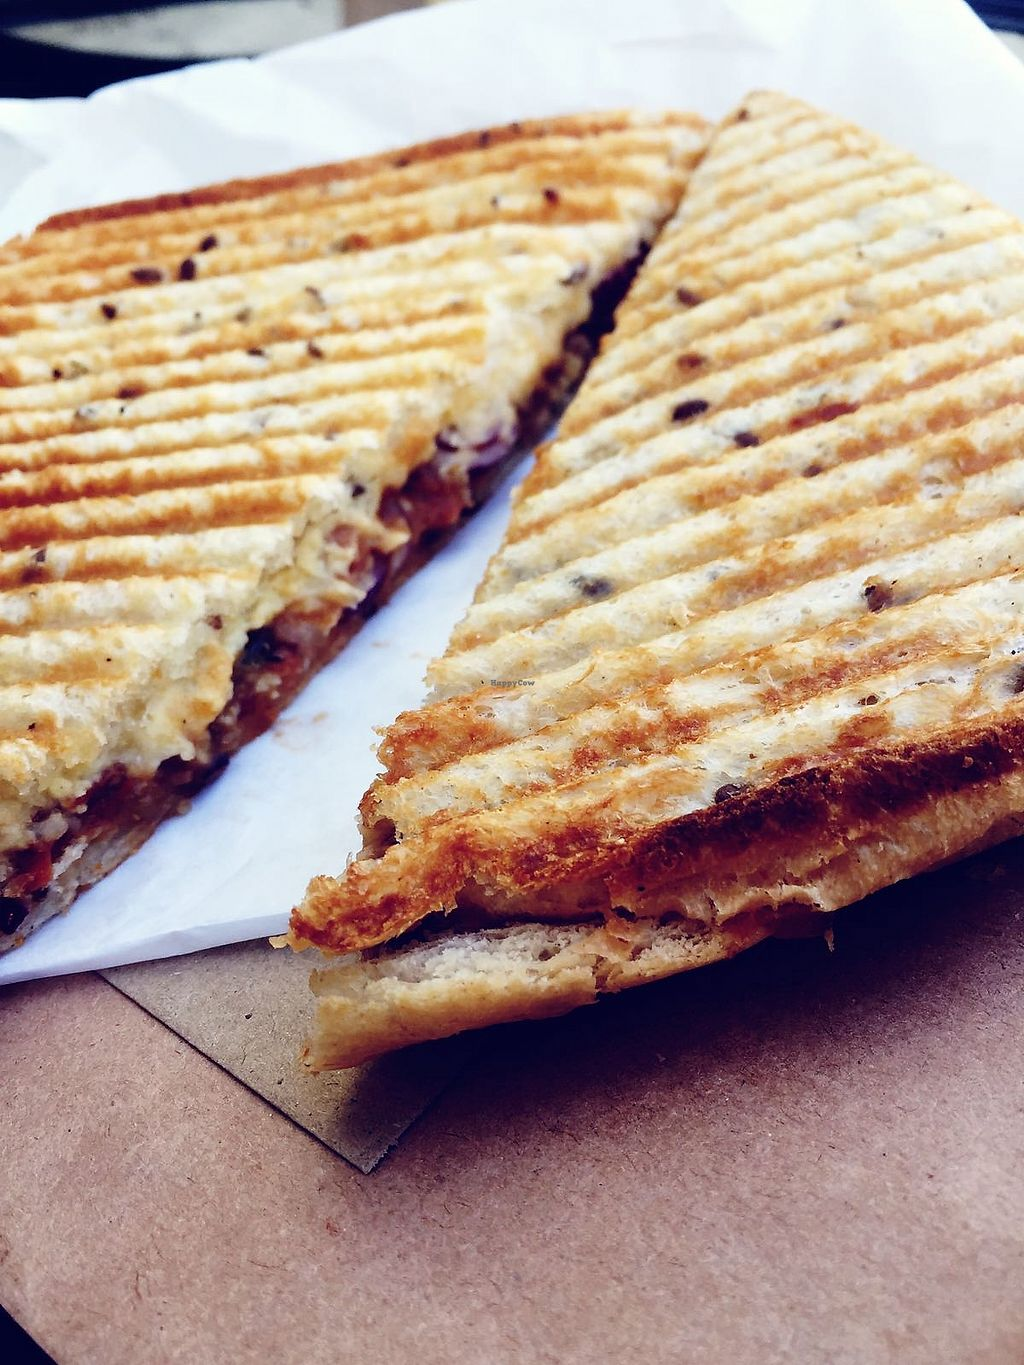 """Photo of Beanos  by <a href=""""/members/profile/TARAMCDONALD"""">TARAMCDONALD</a> <br/>Toasted sandwich <br/> May 1, 2018  - <a href='/contact/abuse/image/29081/393682'>Report</a>"""